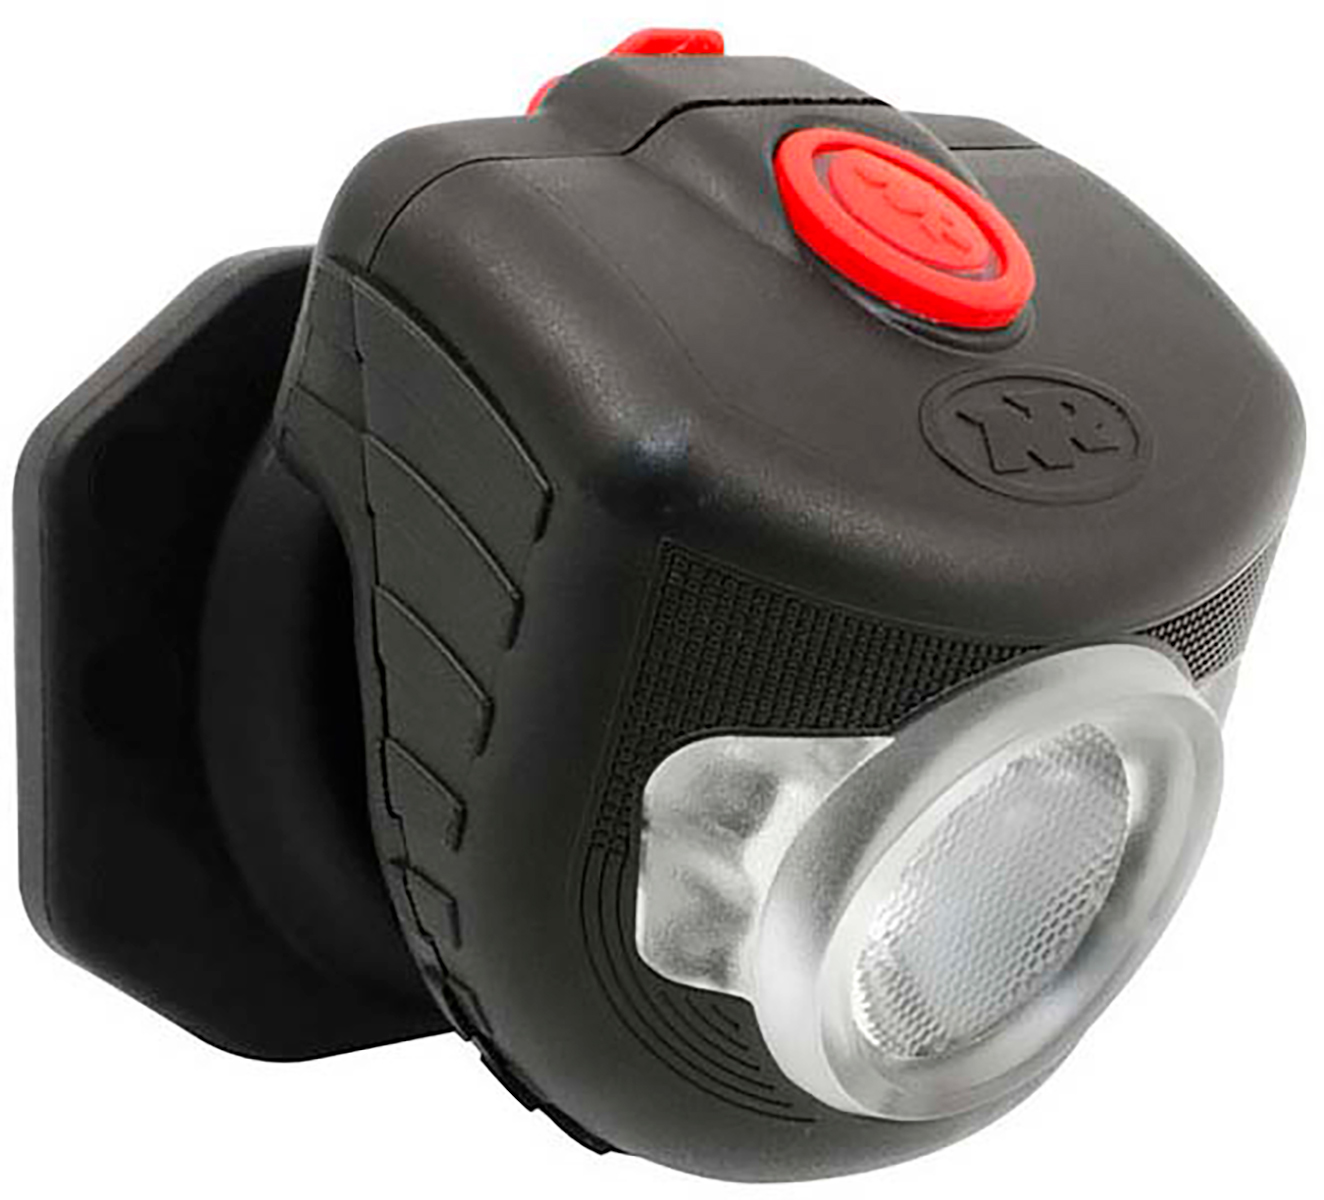 NiteRider Adventure Pro 320 Headlamp | Pandelamper